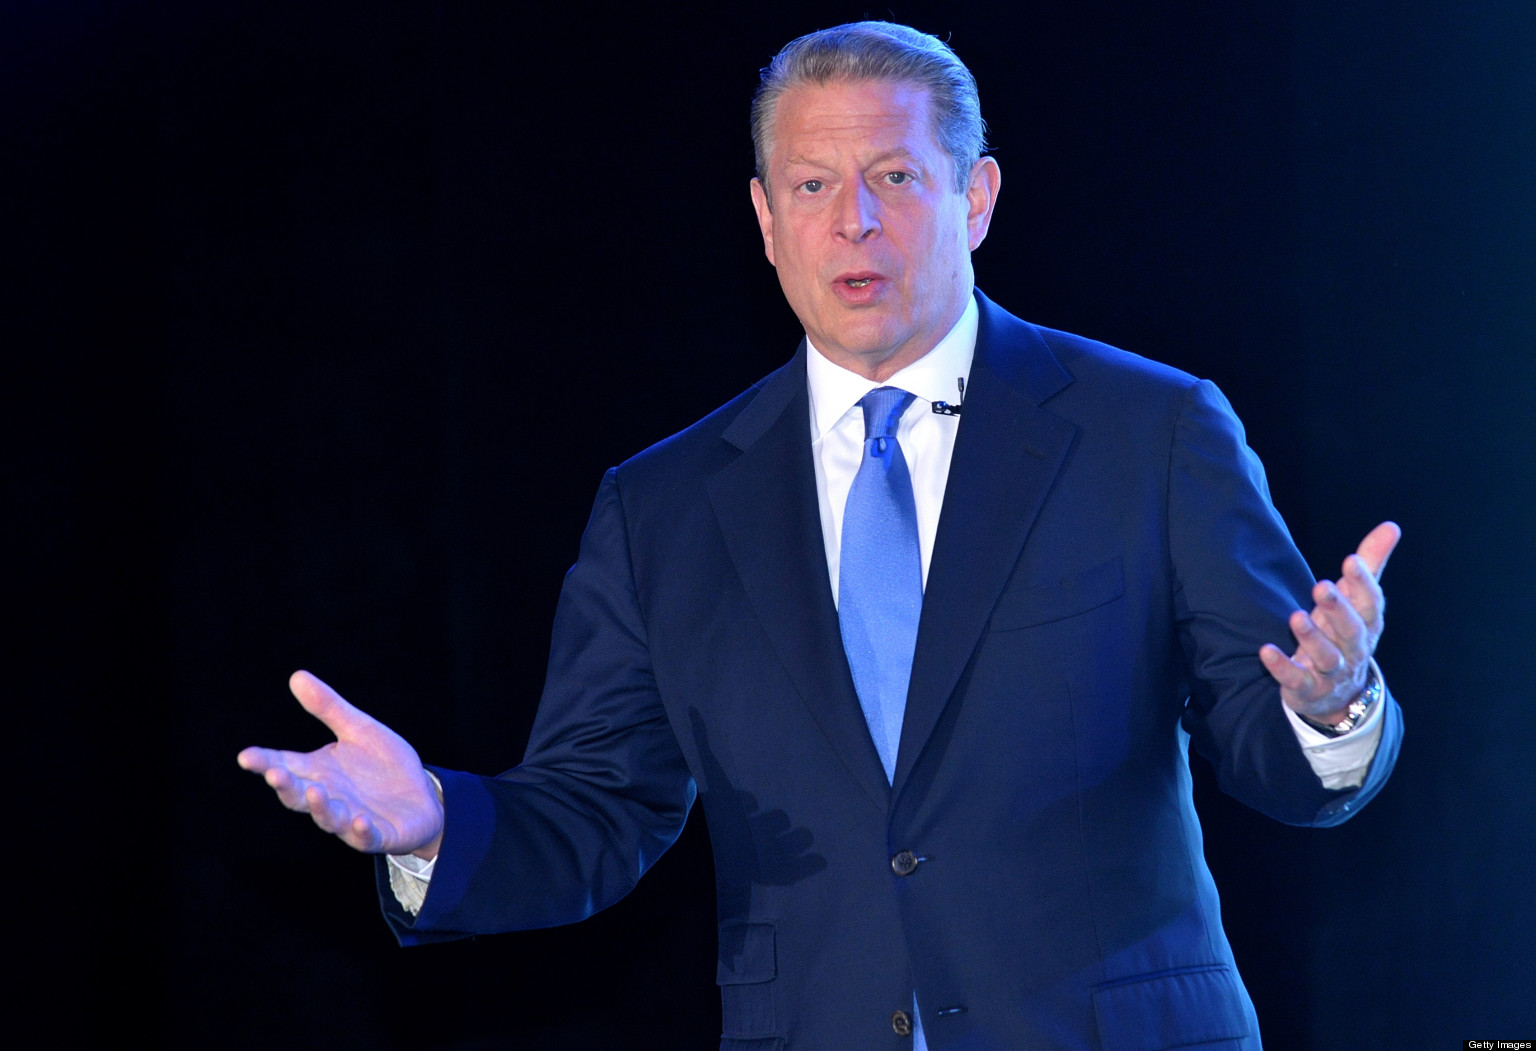 an inconvenient truth by al gore Al gore's environmental documentary an inconvenient truth contains nine key scientific errors, a high court judge ruled yesterday.